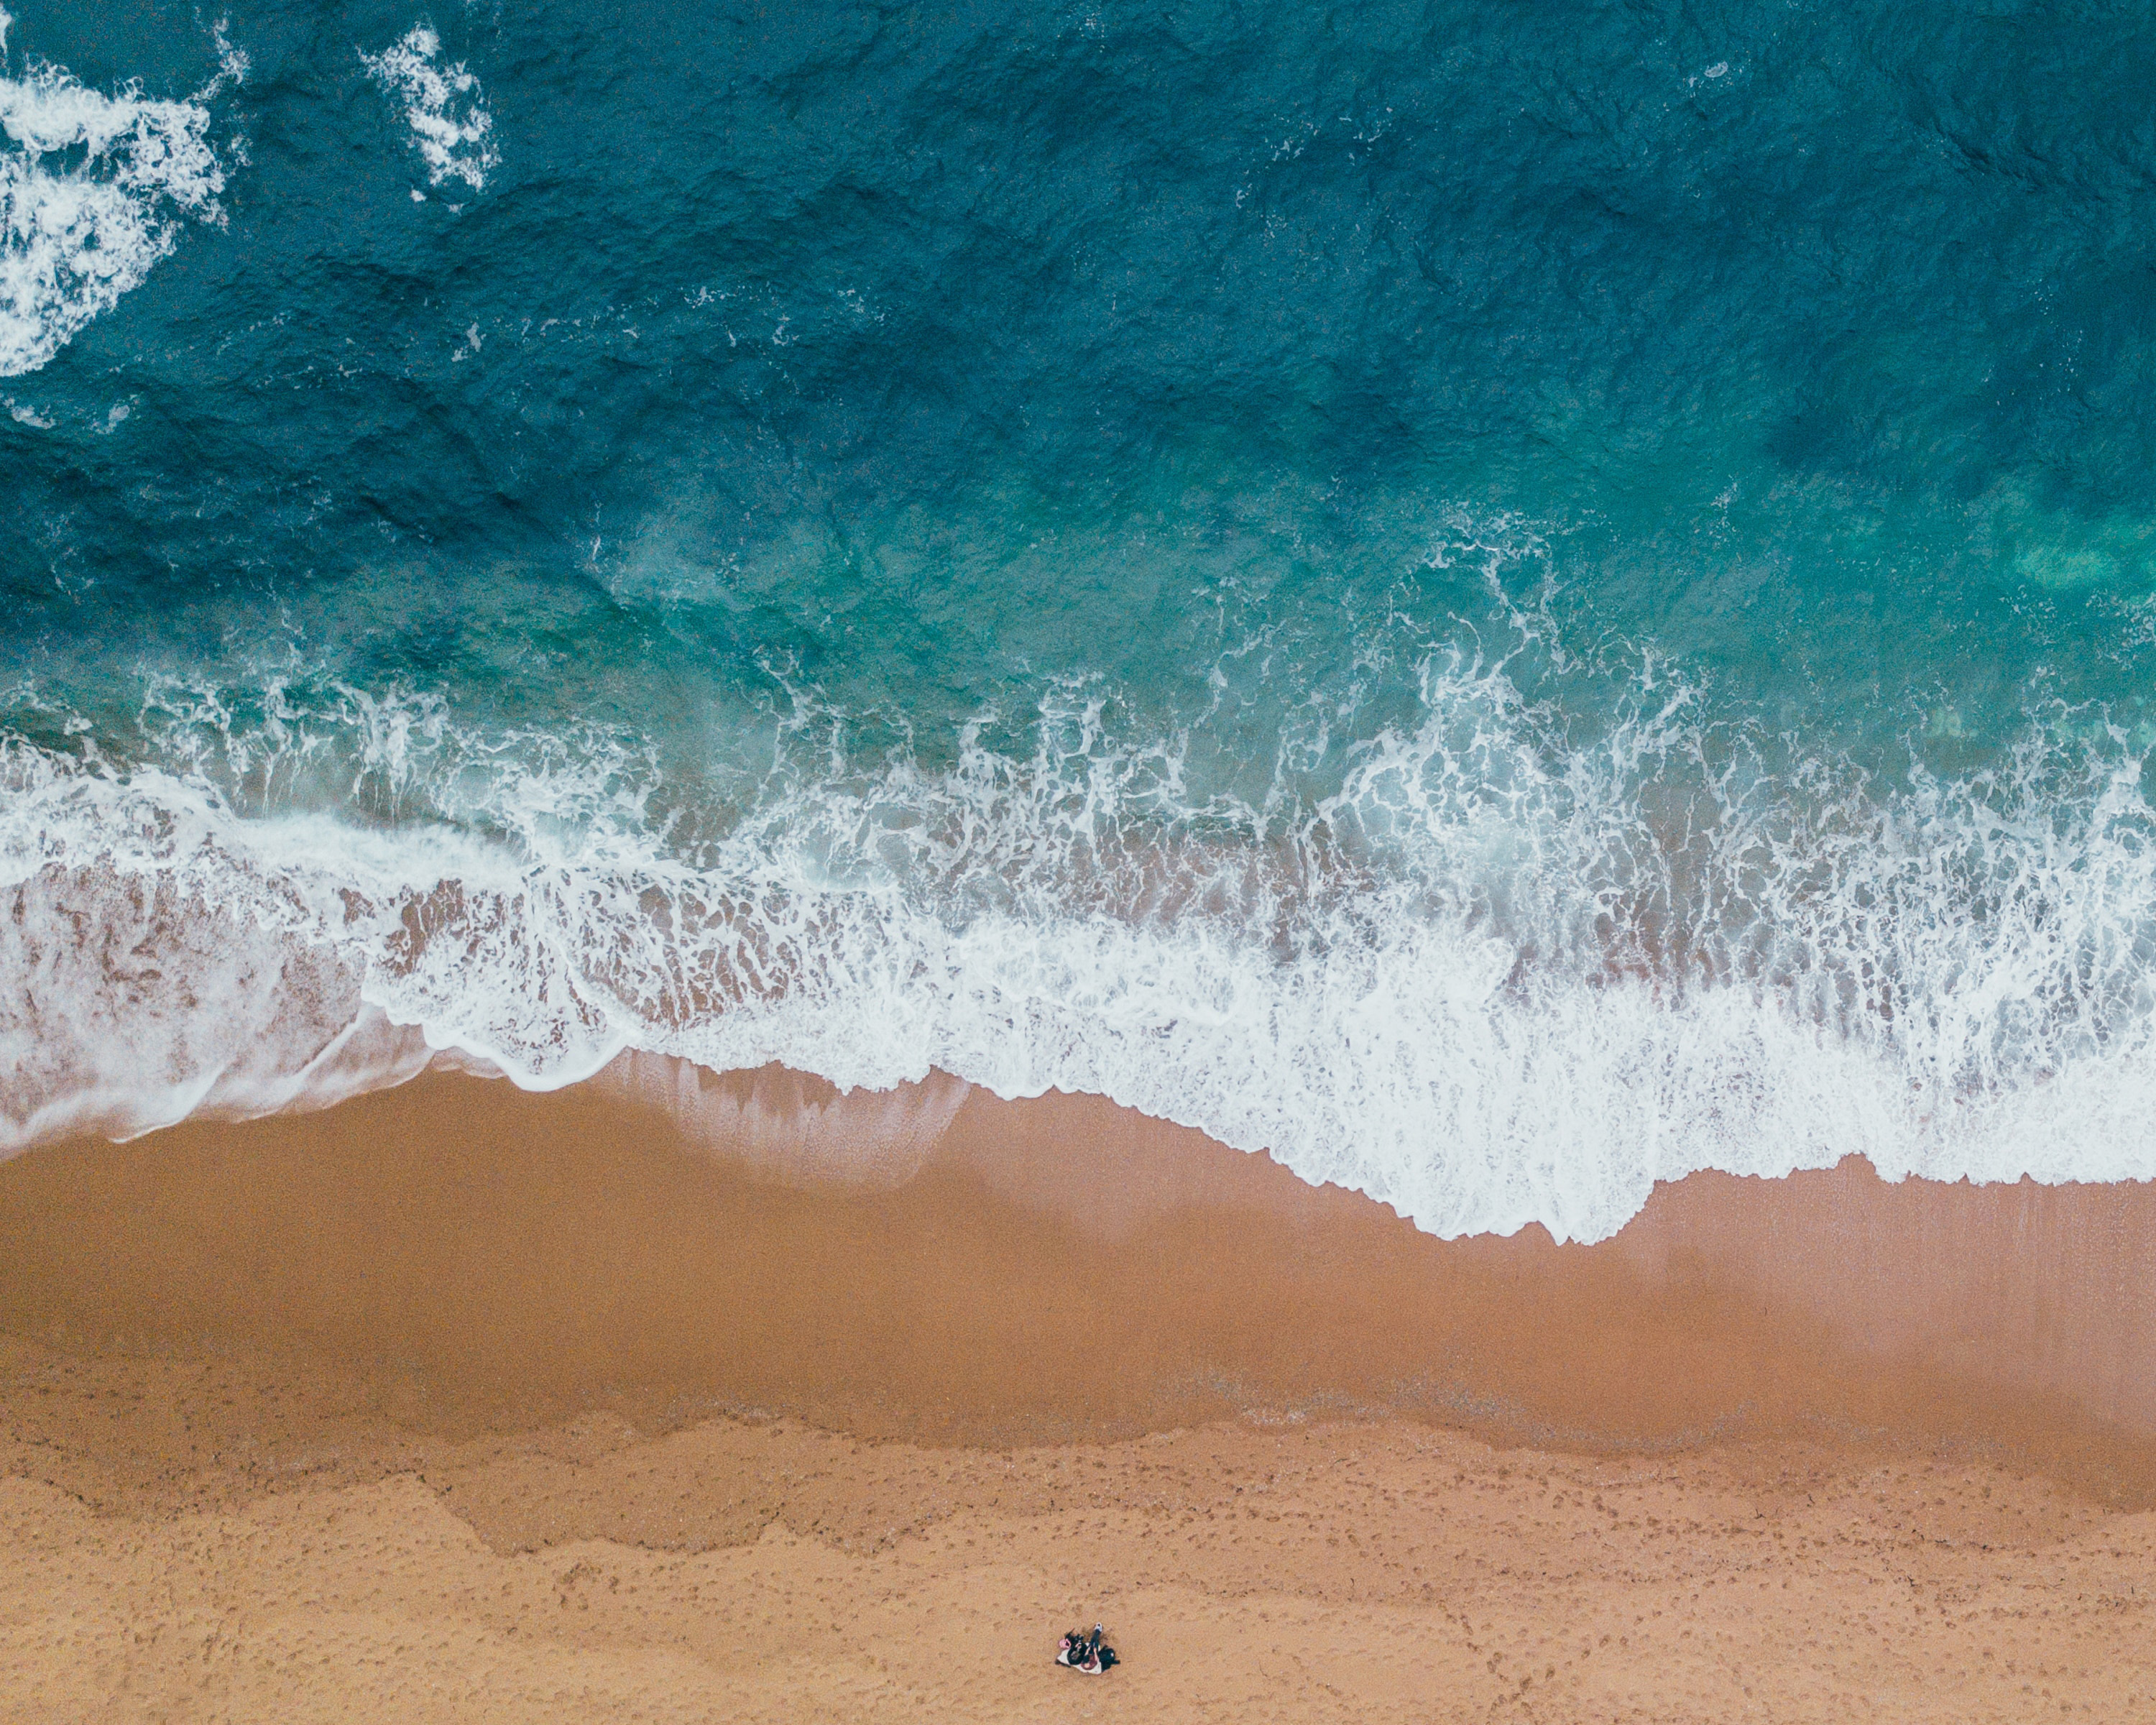 shoreline of sand and ocean image free stock photo public domain